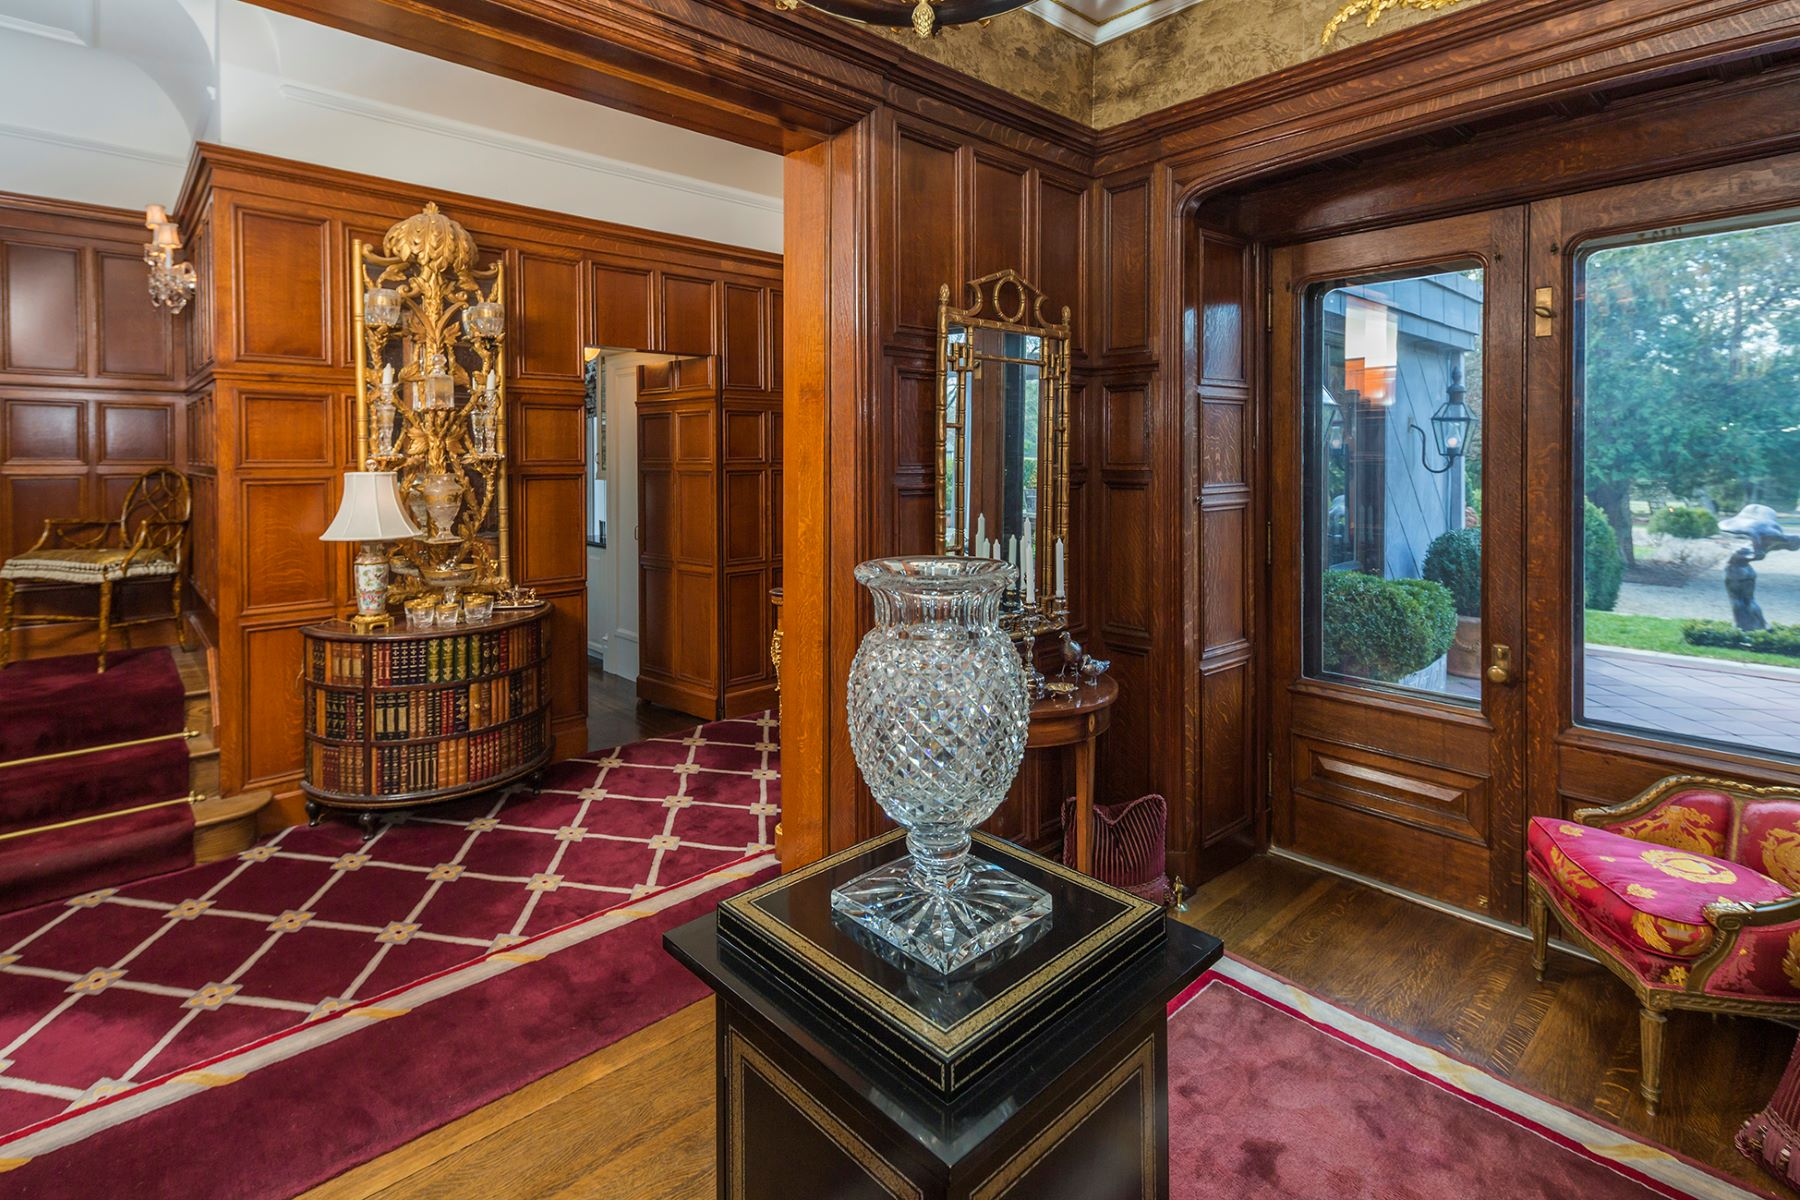 Additional photo for property listing at Great Warmth Amid Turn-of-the-Century Ambiance 2 Constitution Hill East Princeton, Нью-Джерси 08540 Соединенные Штаты